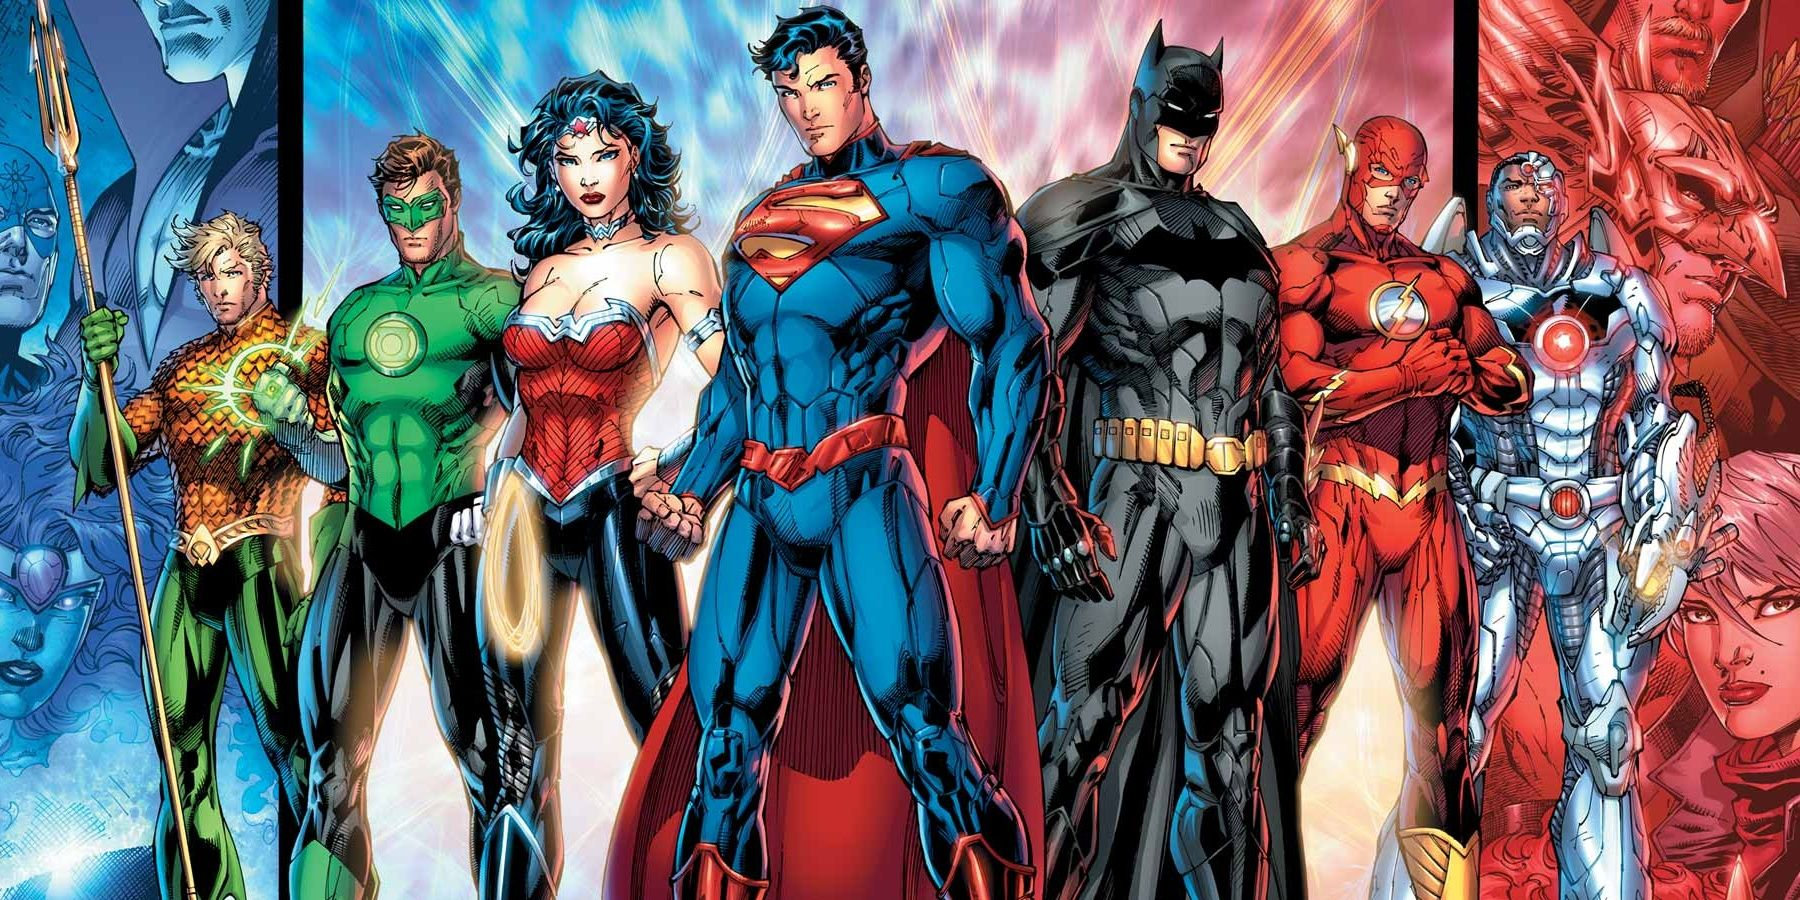 The 10 Richest Characters in DC Comics (& How Much They're Worth)